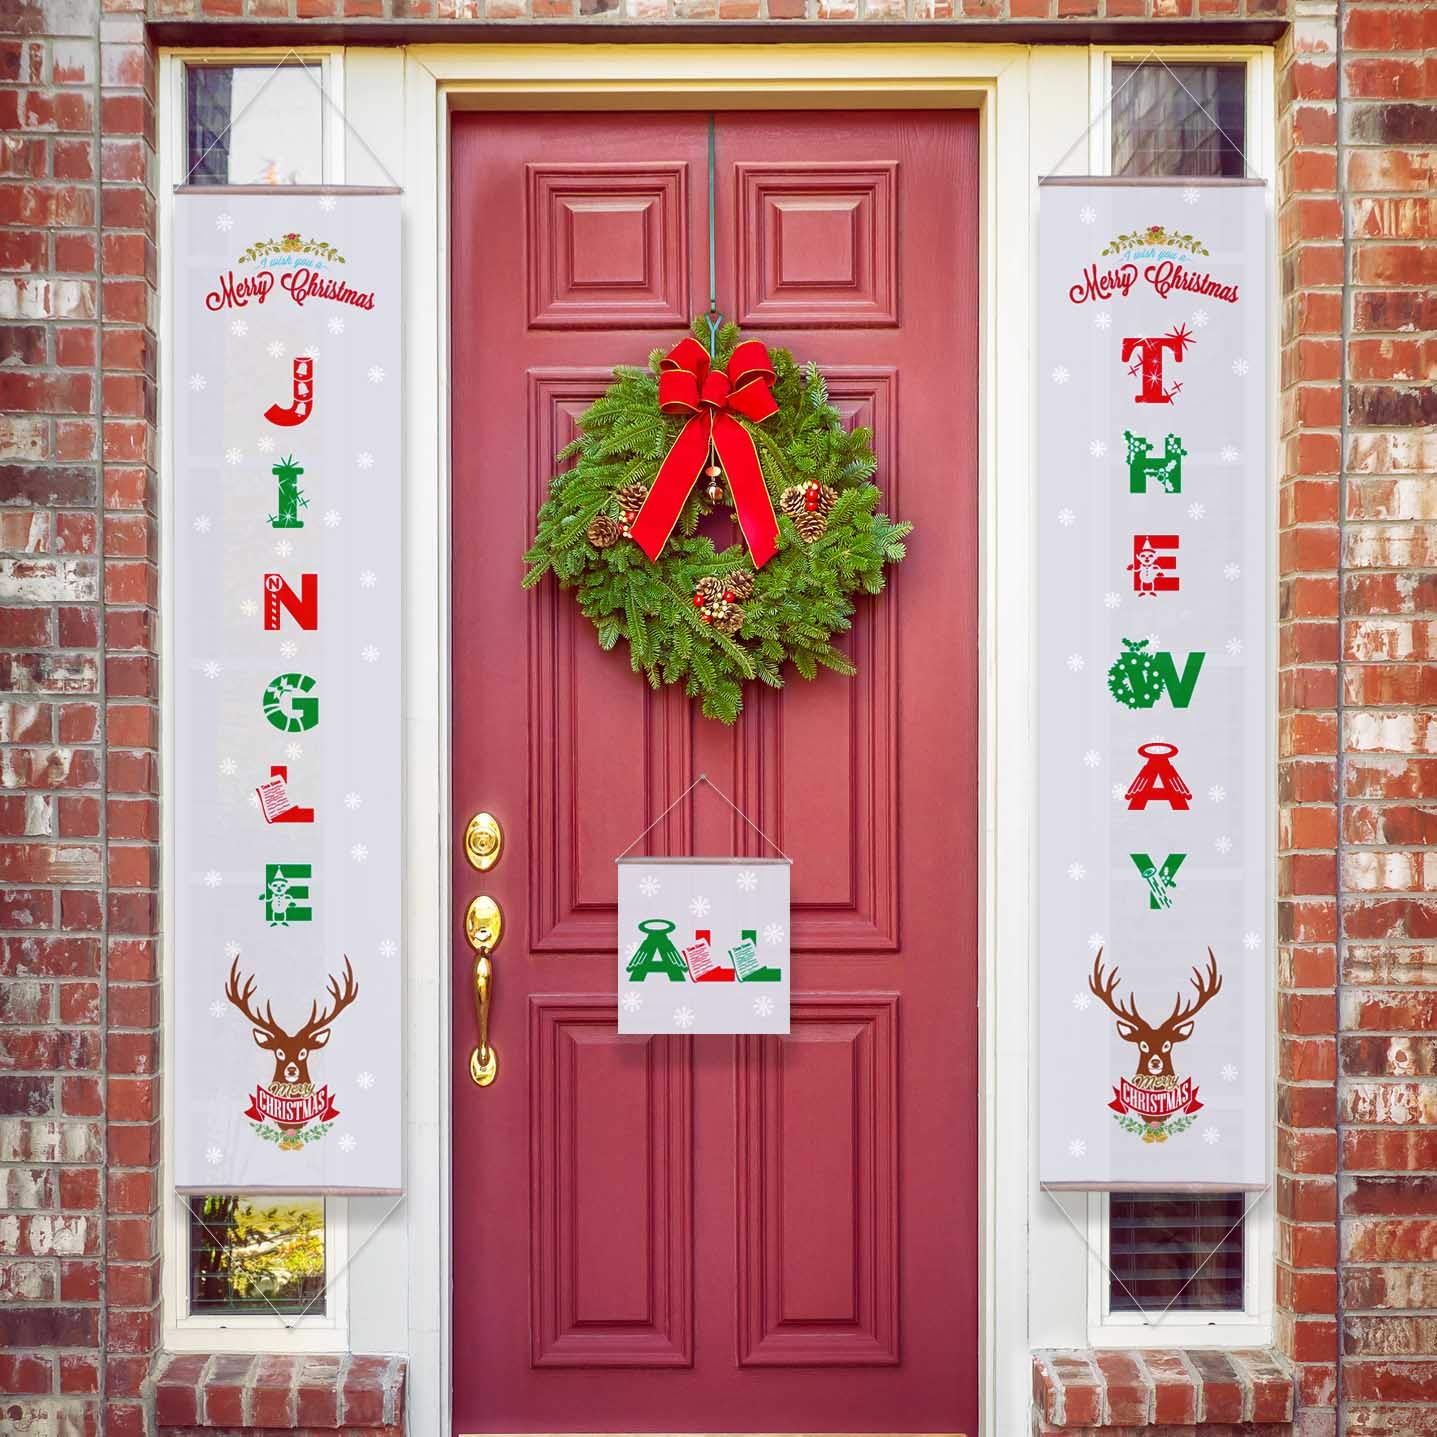 Outside Christmas Decorations.Kay M Jingle All The Way Large Christmas Decorations Merry Christmas Banner Front Door Fireplace Mantle Decor Outside Christmas Decoration